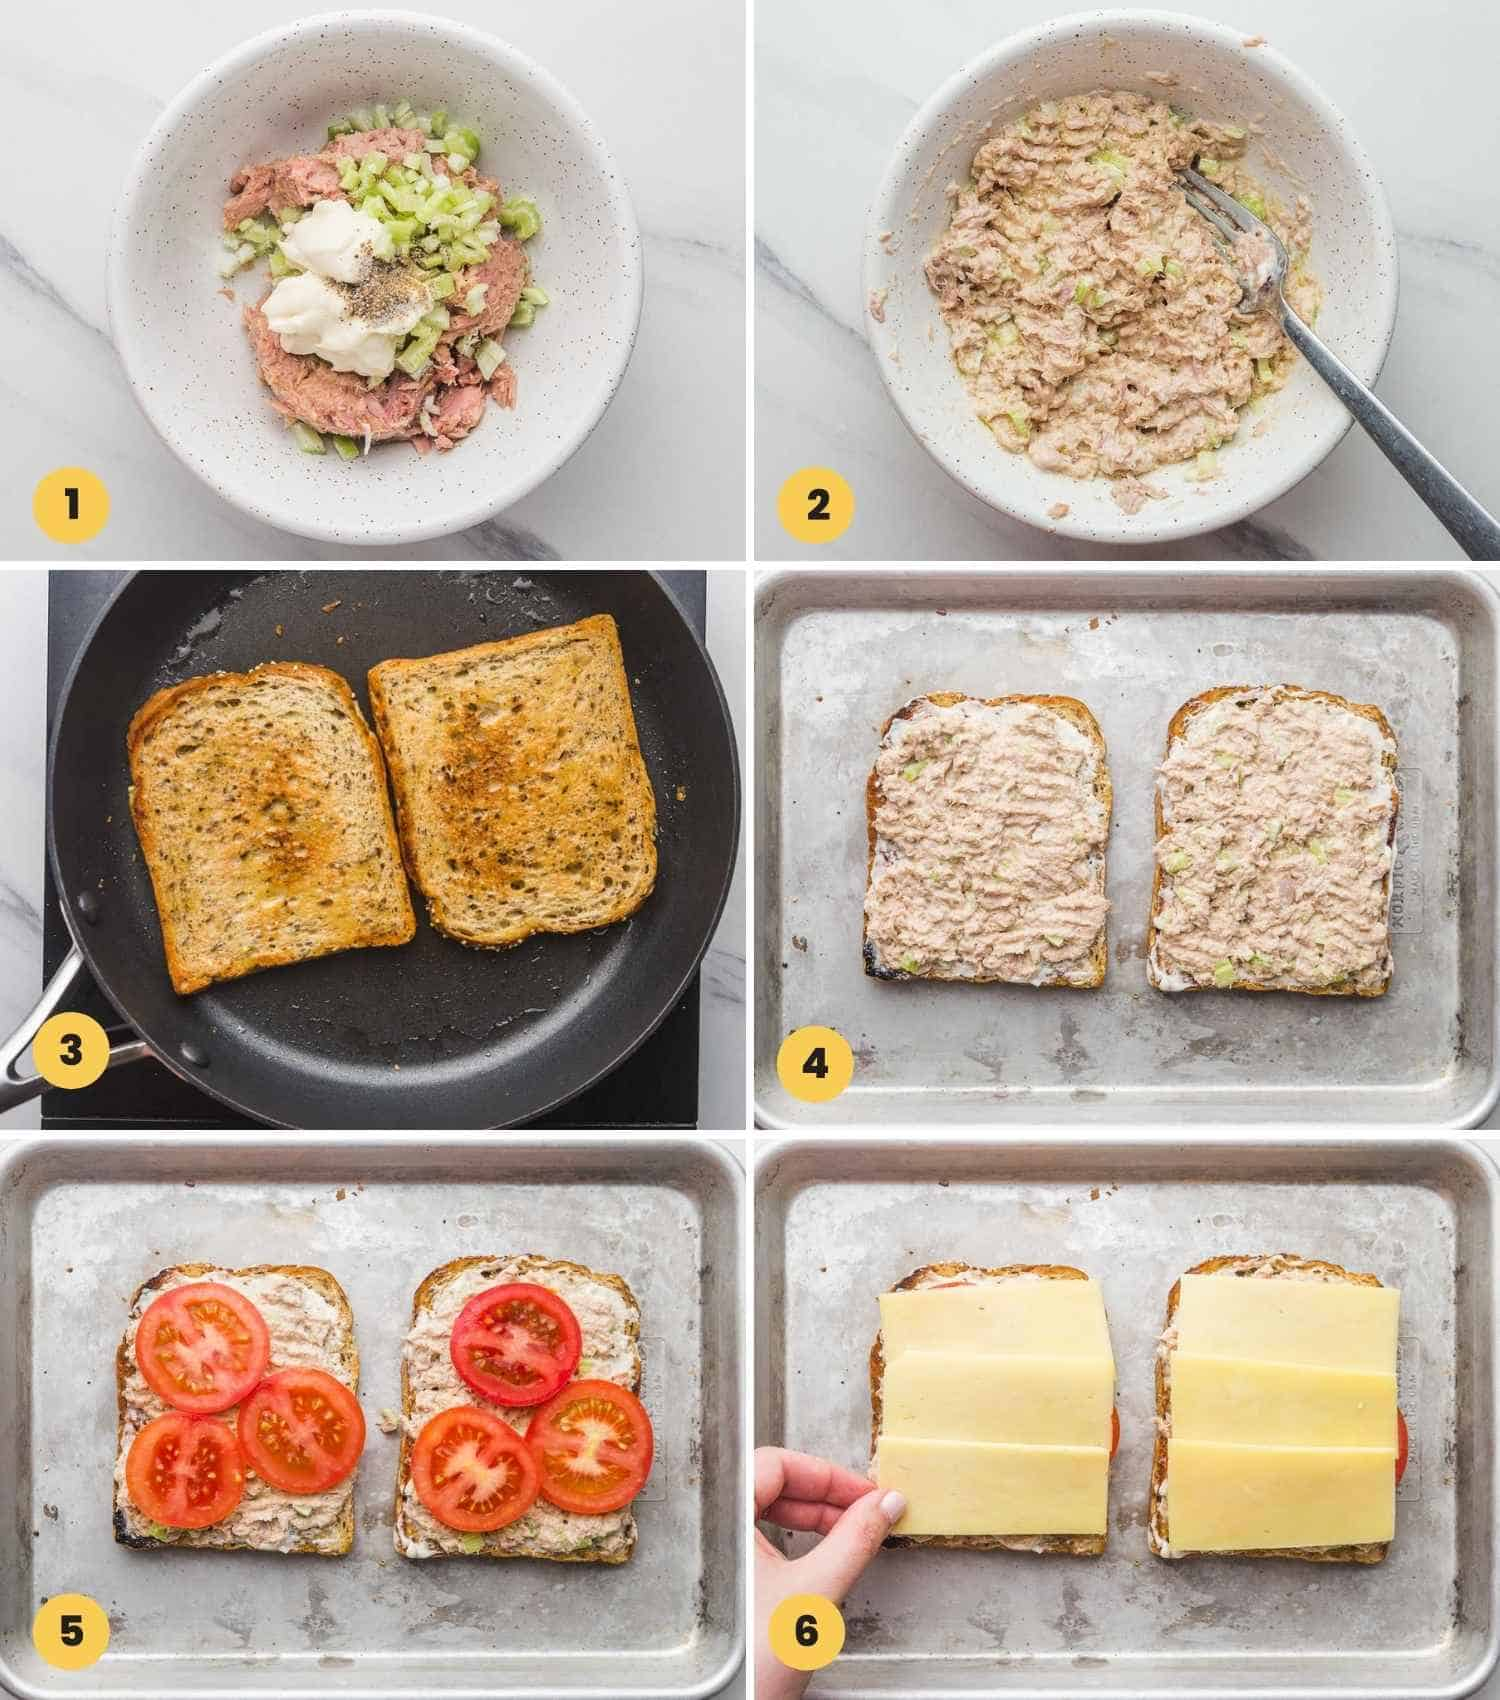 A collage with 6 images showing how to make tuna melt.